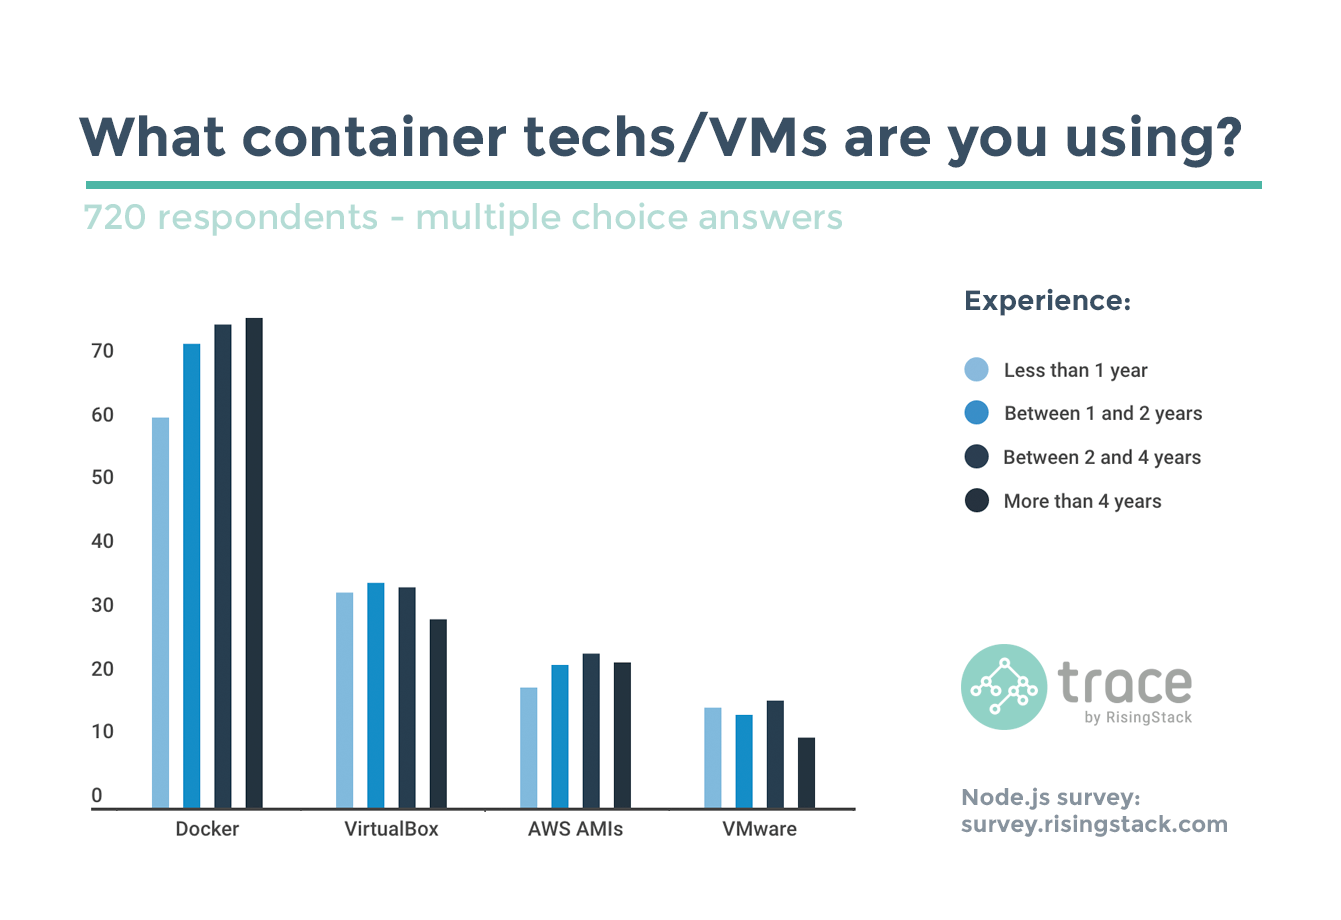 Node.js Survey - Container techs and developer experience.